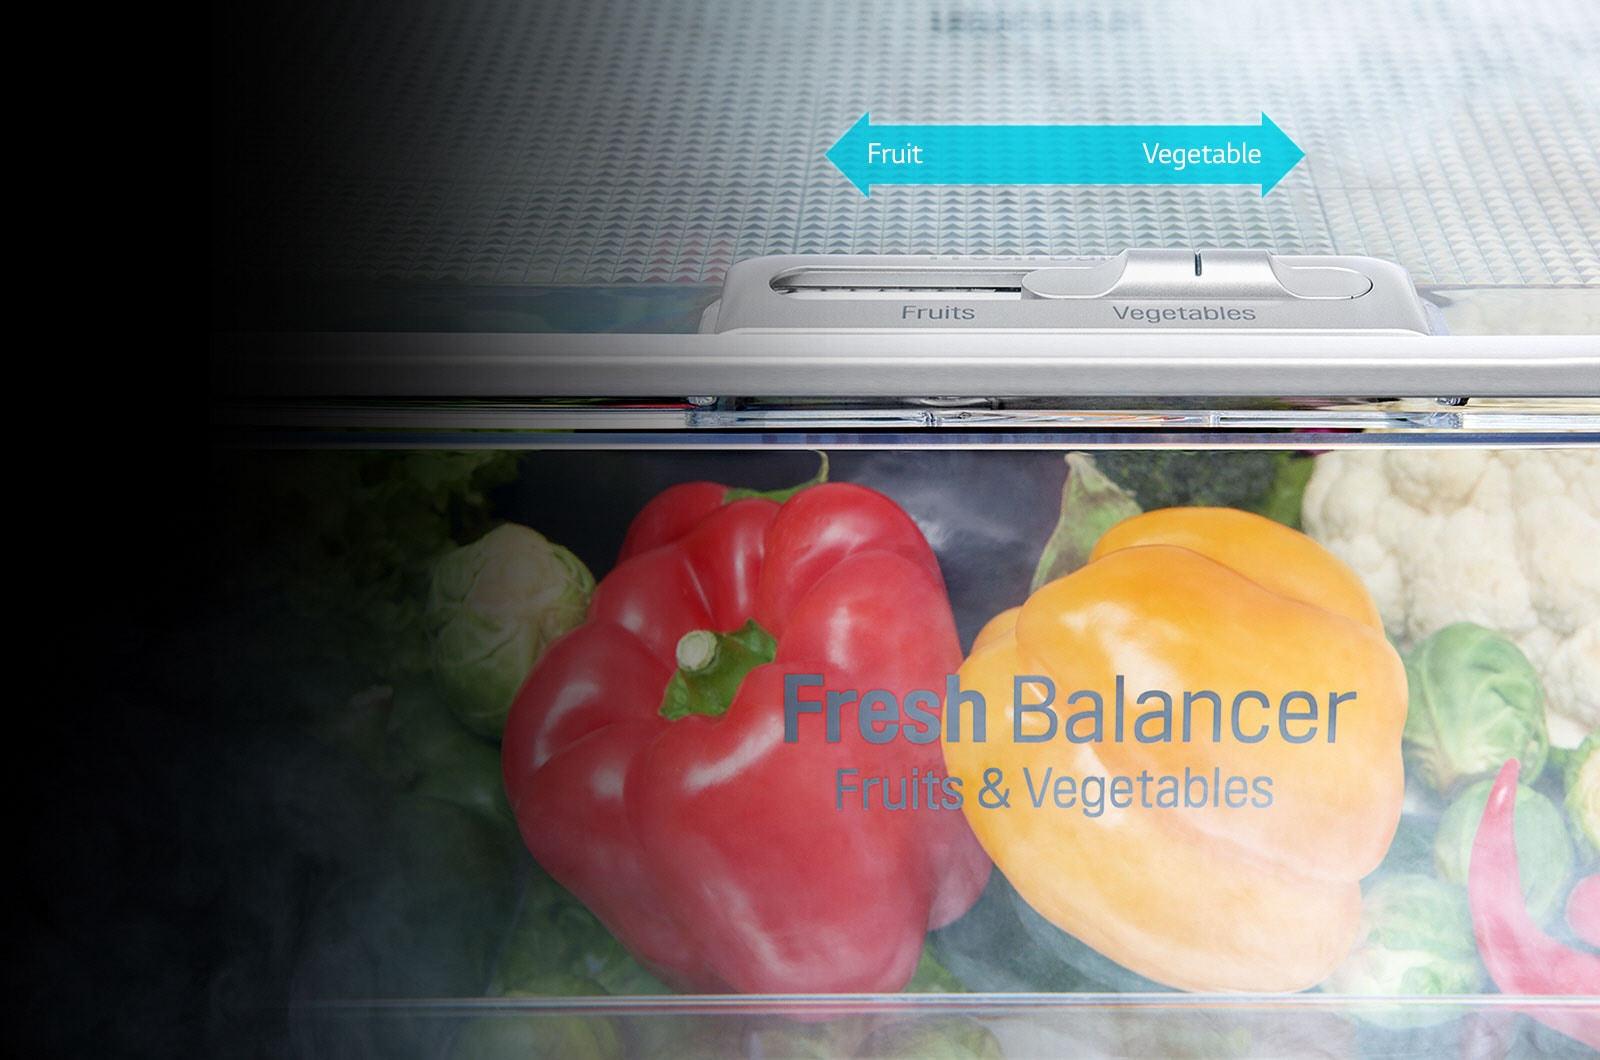 LG Fridges - FRESH Balancer®